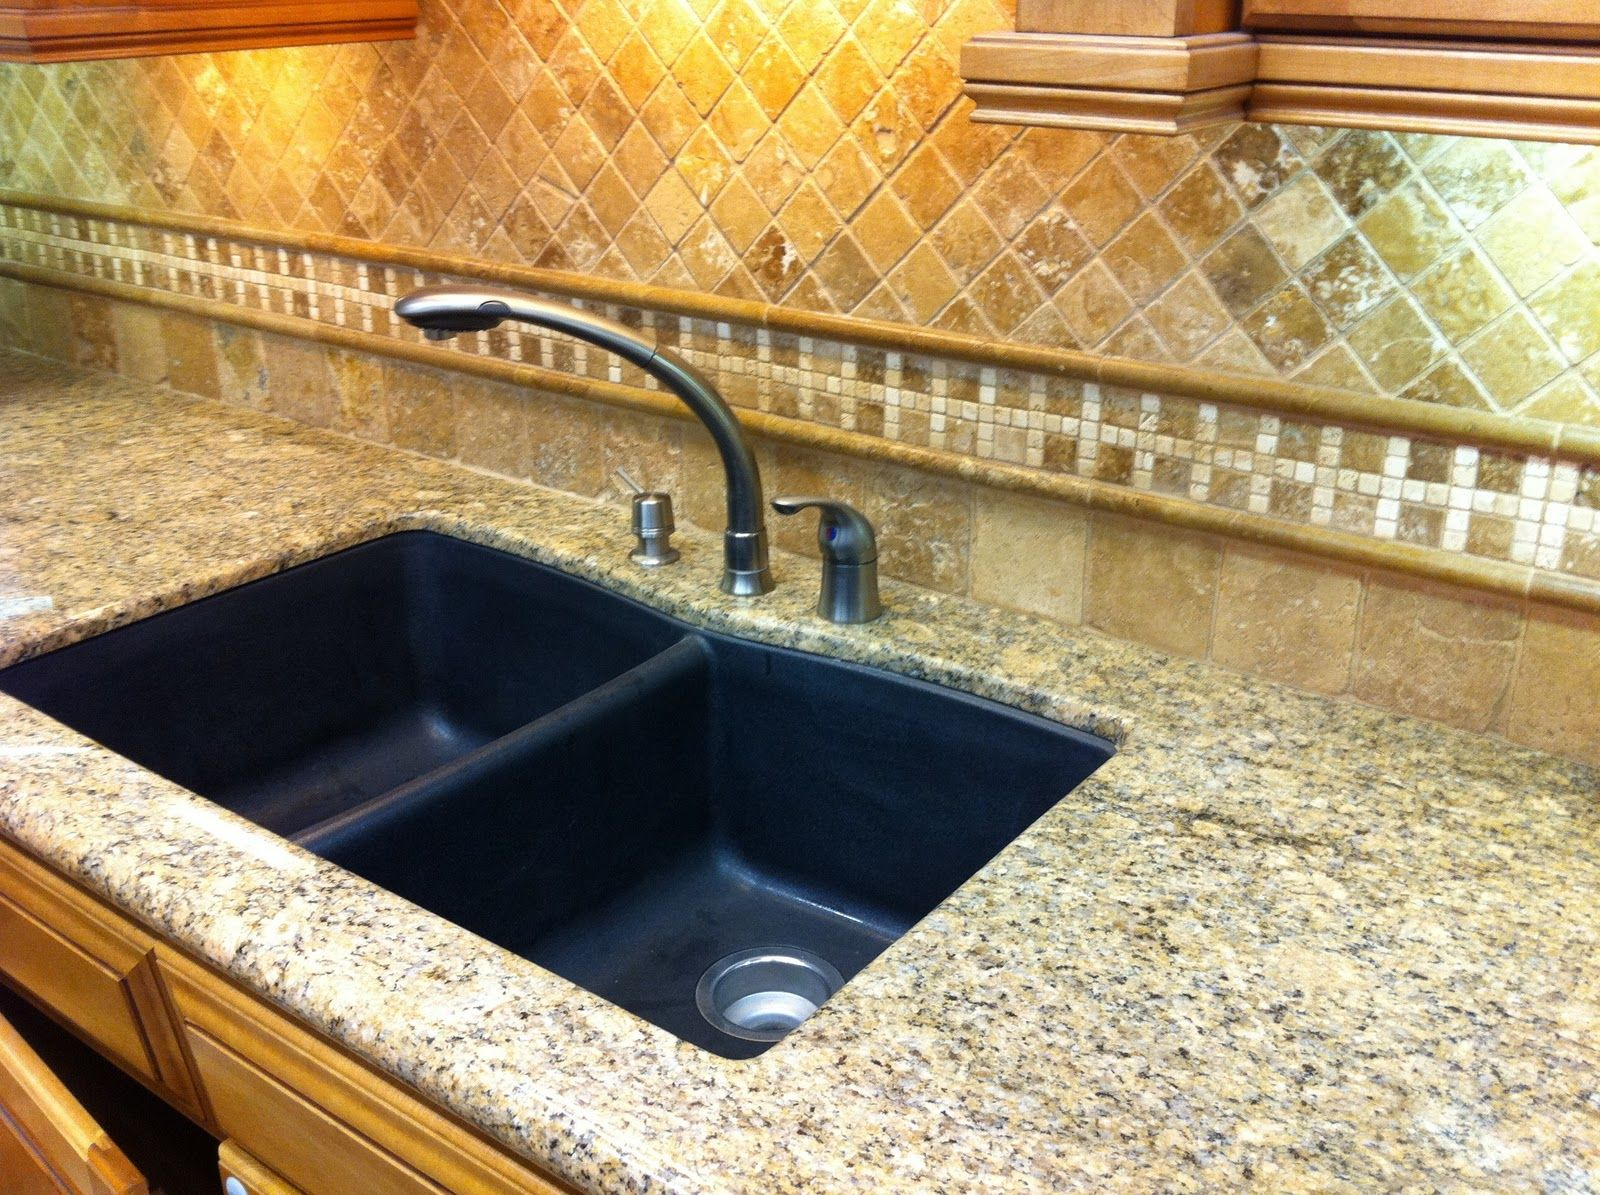 Backsplash ideas for granite countertops gorgeous light brown cream granite tile countertop combined with black double sinks and backsplash wall dailygadgetfo Images